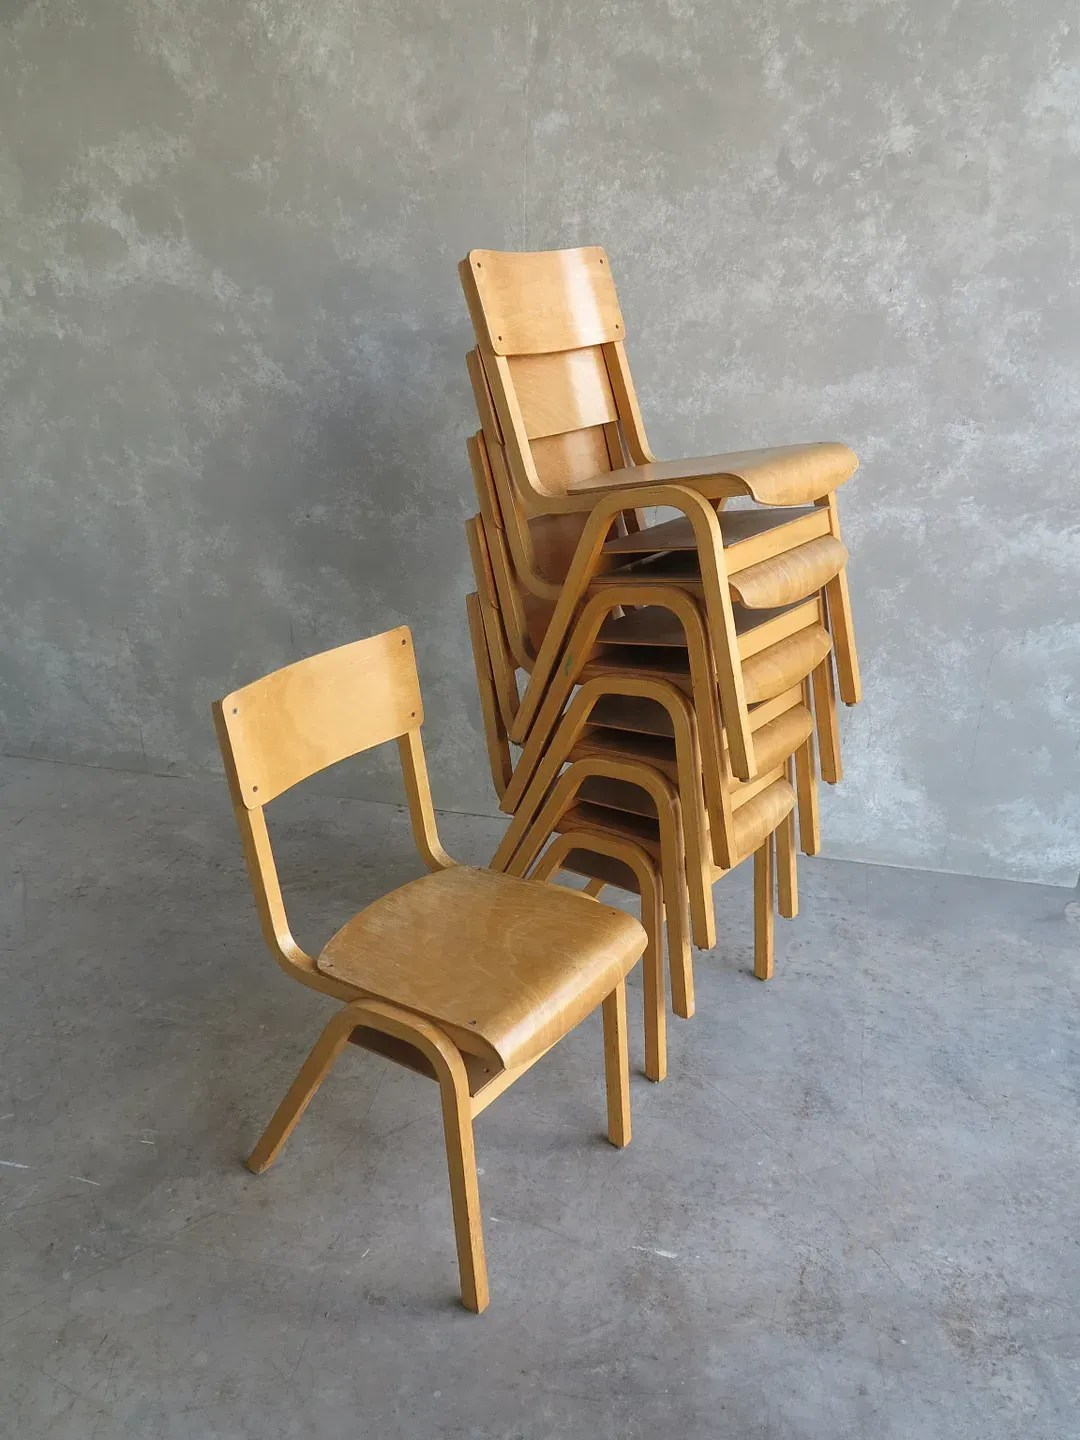 Old Retro Vintage Wooden Stacking Chairs From Portsmouth